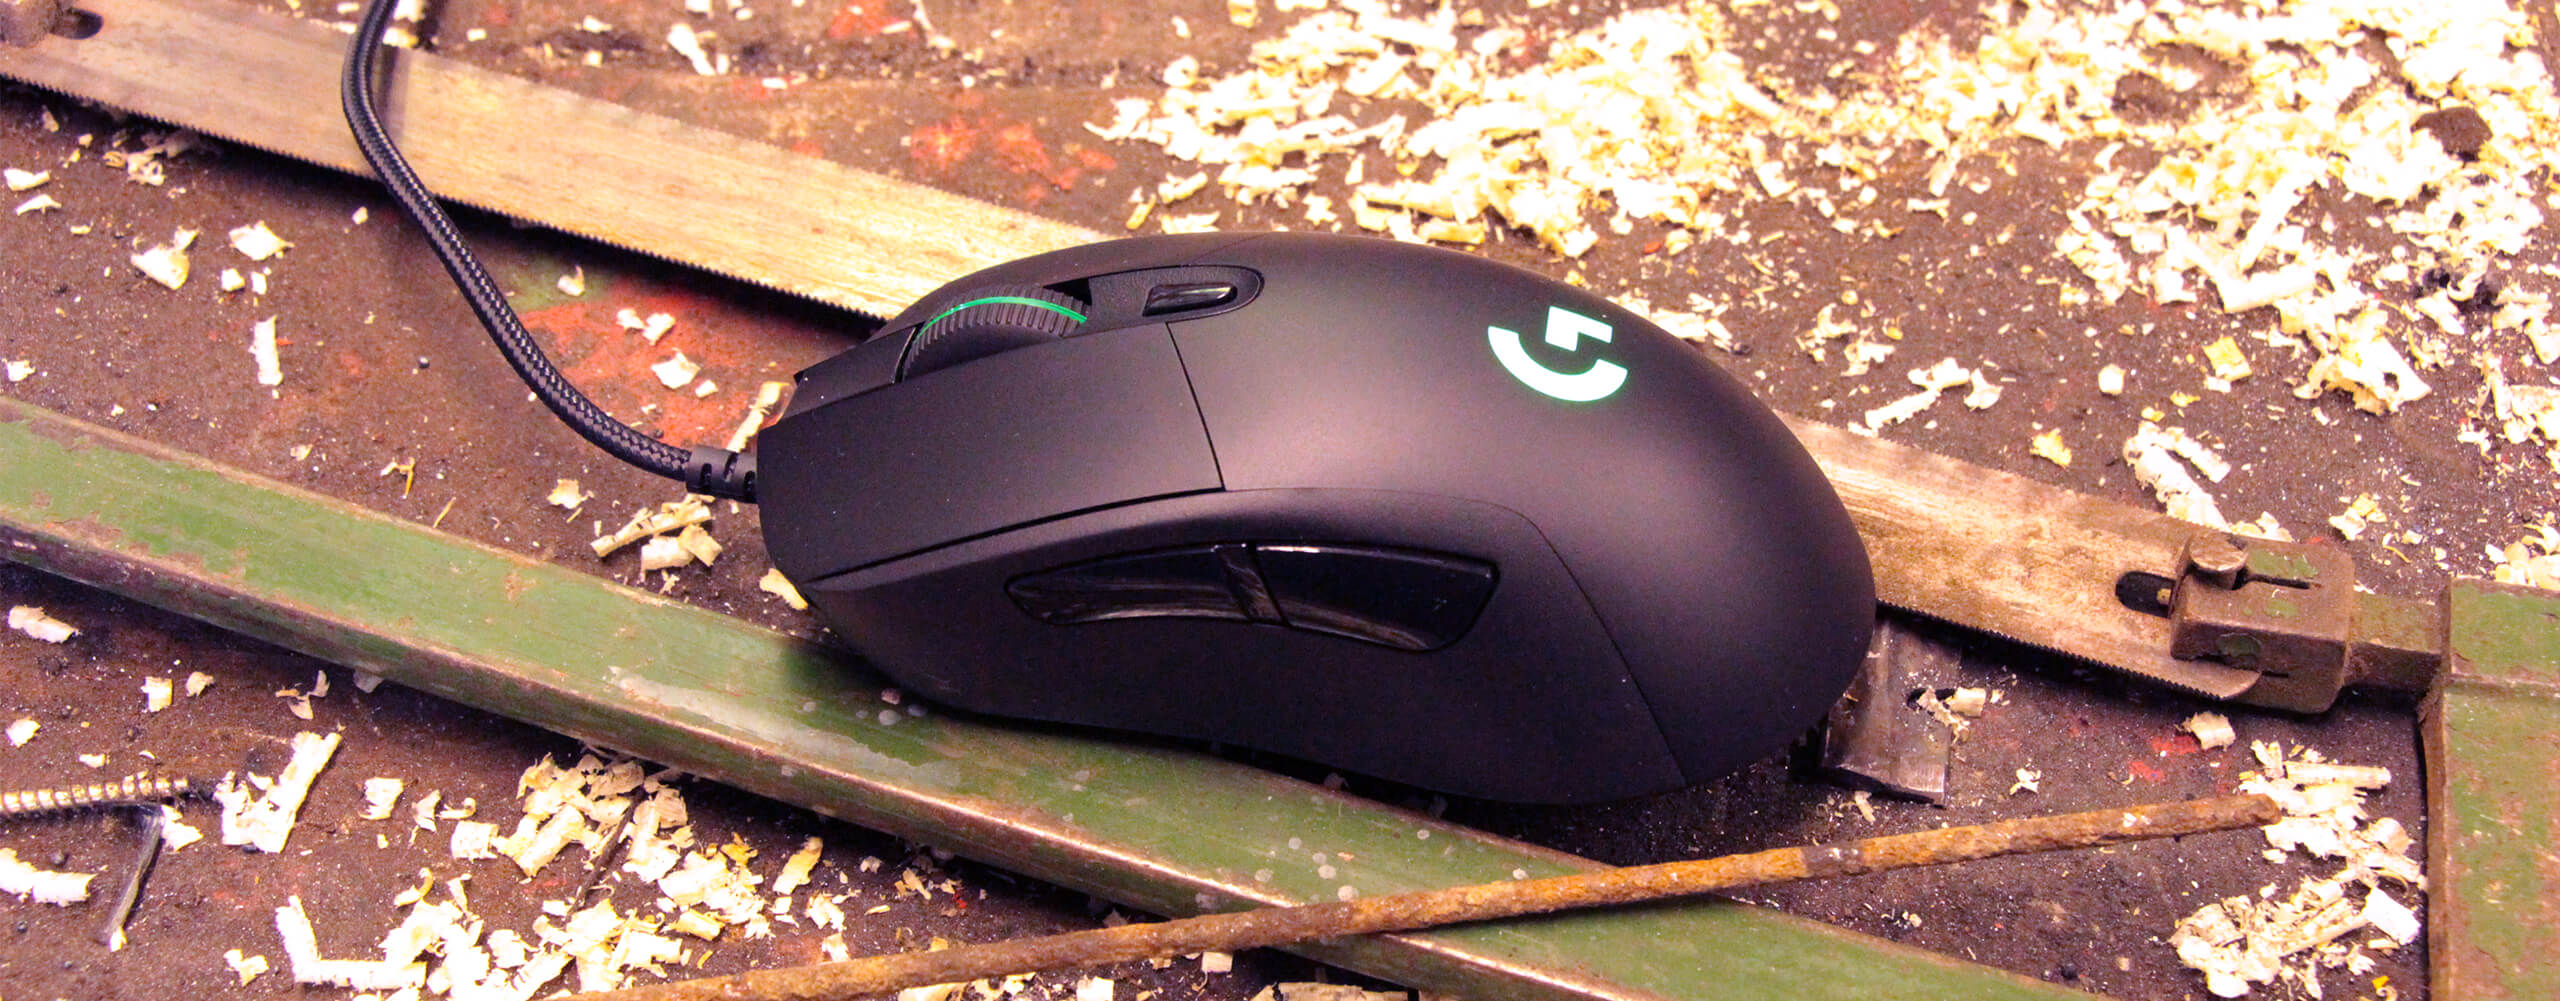 Logitech G403 Test - Outdoor